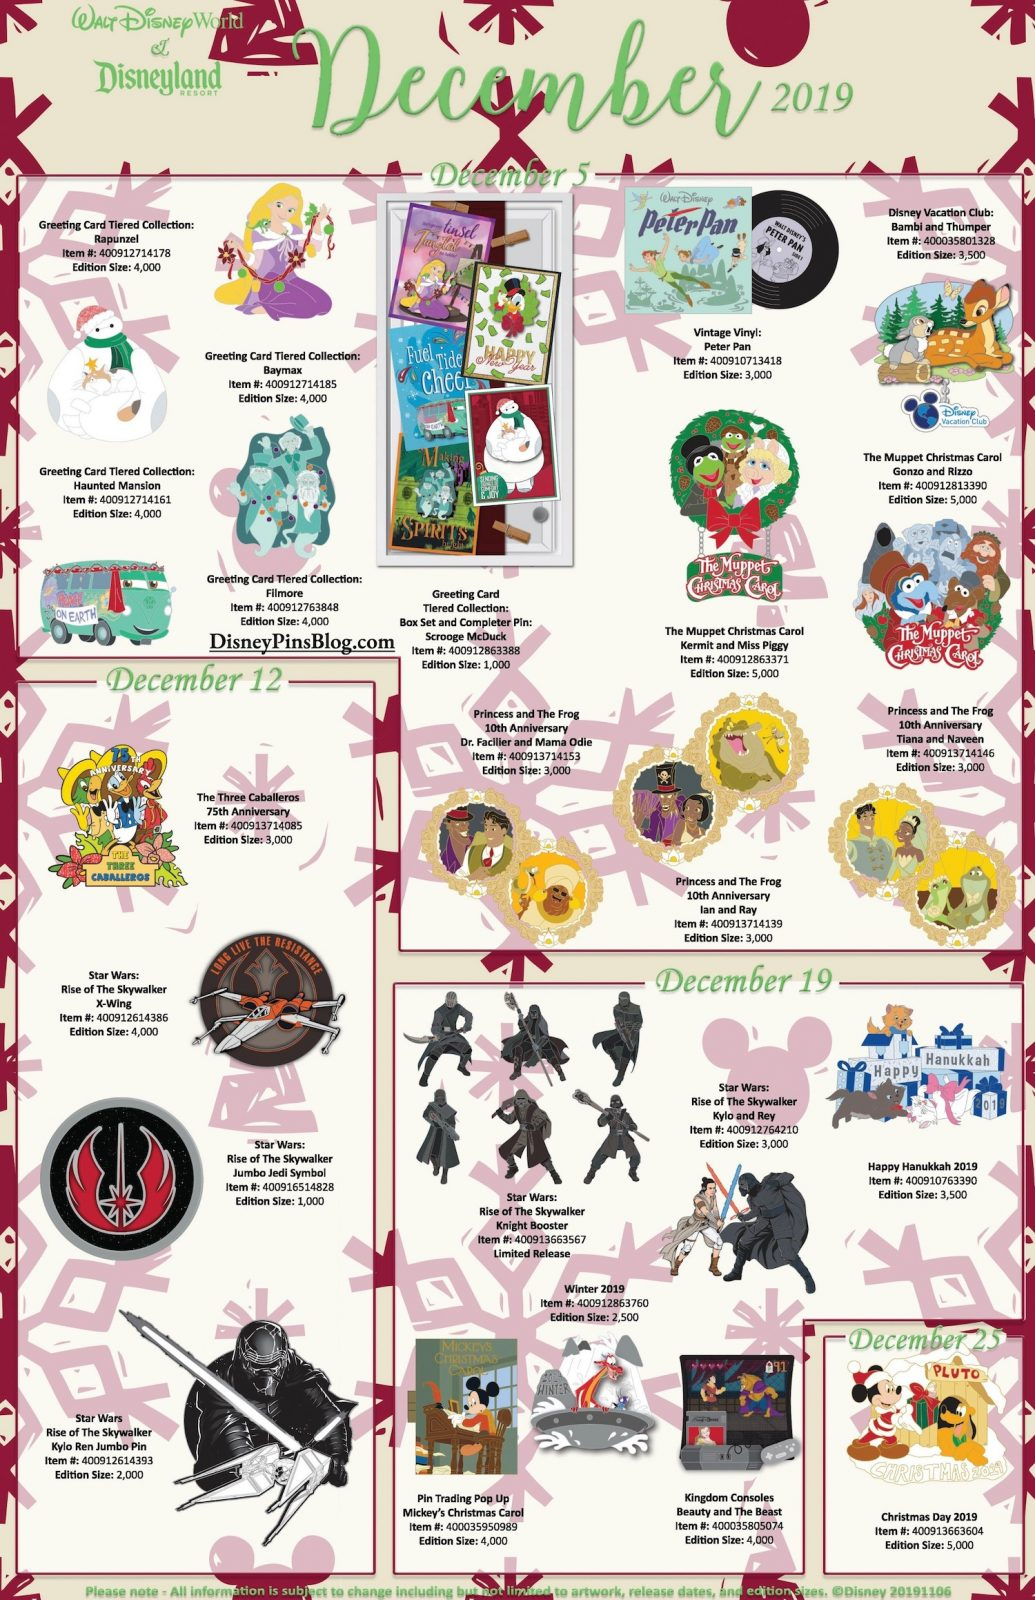 Shared Disney Parks December 2019 Pins